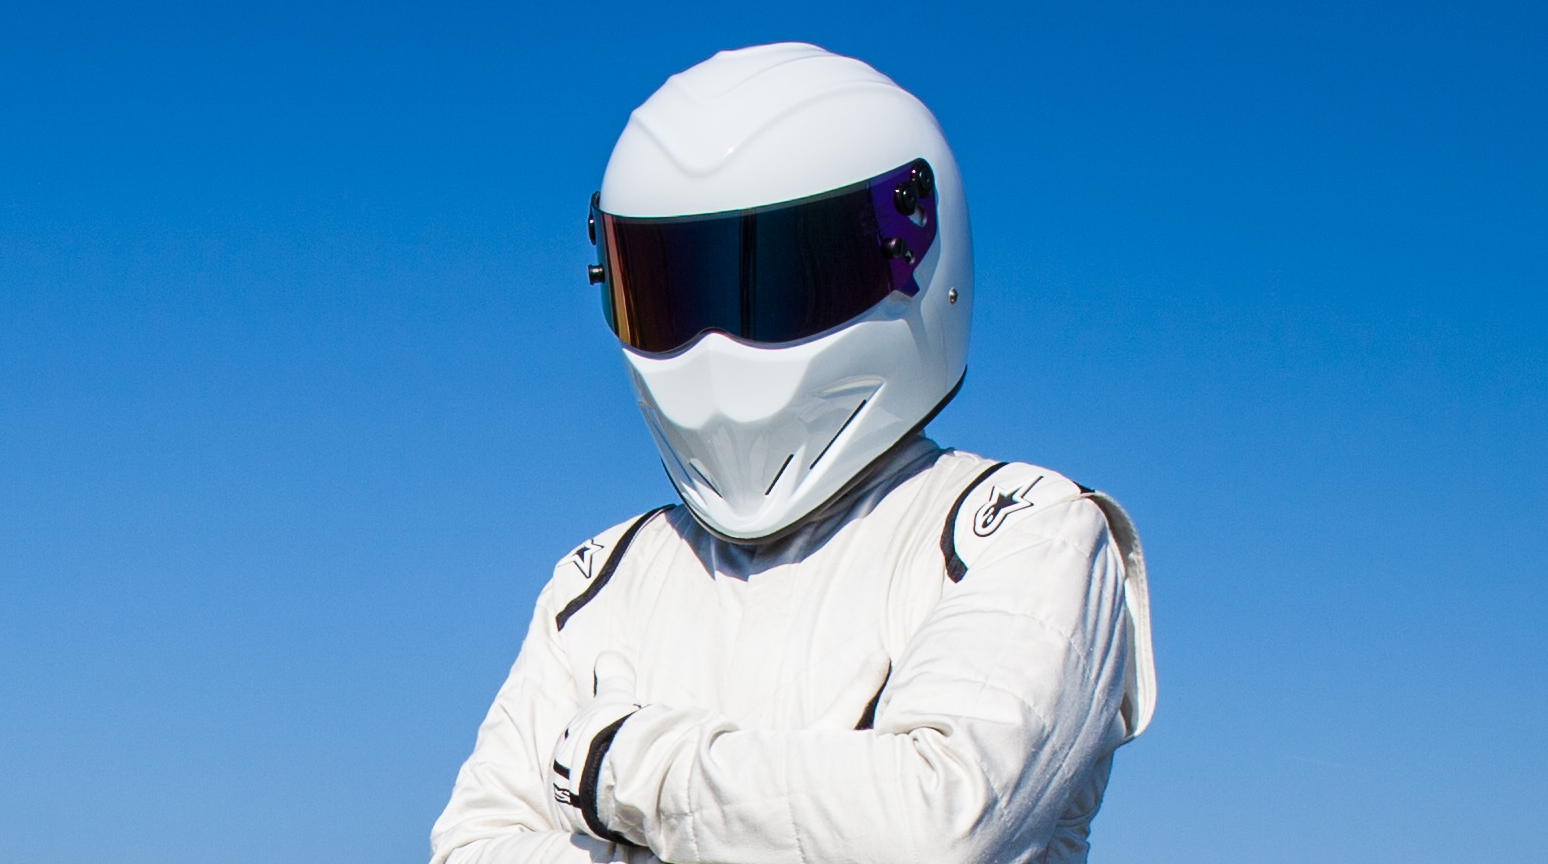 But What About The Stig